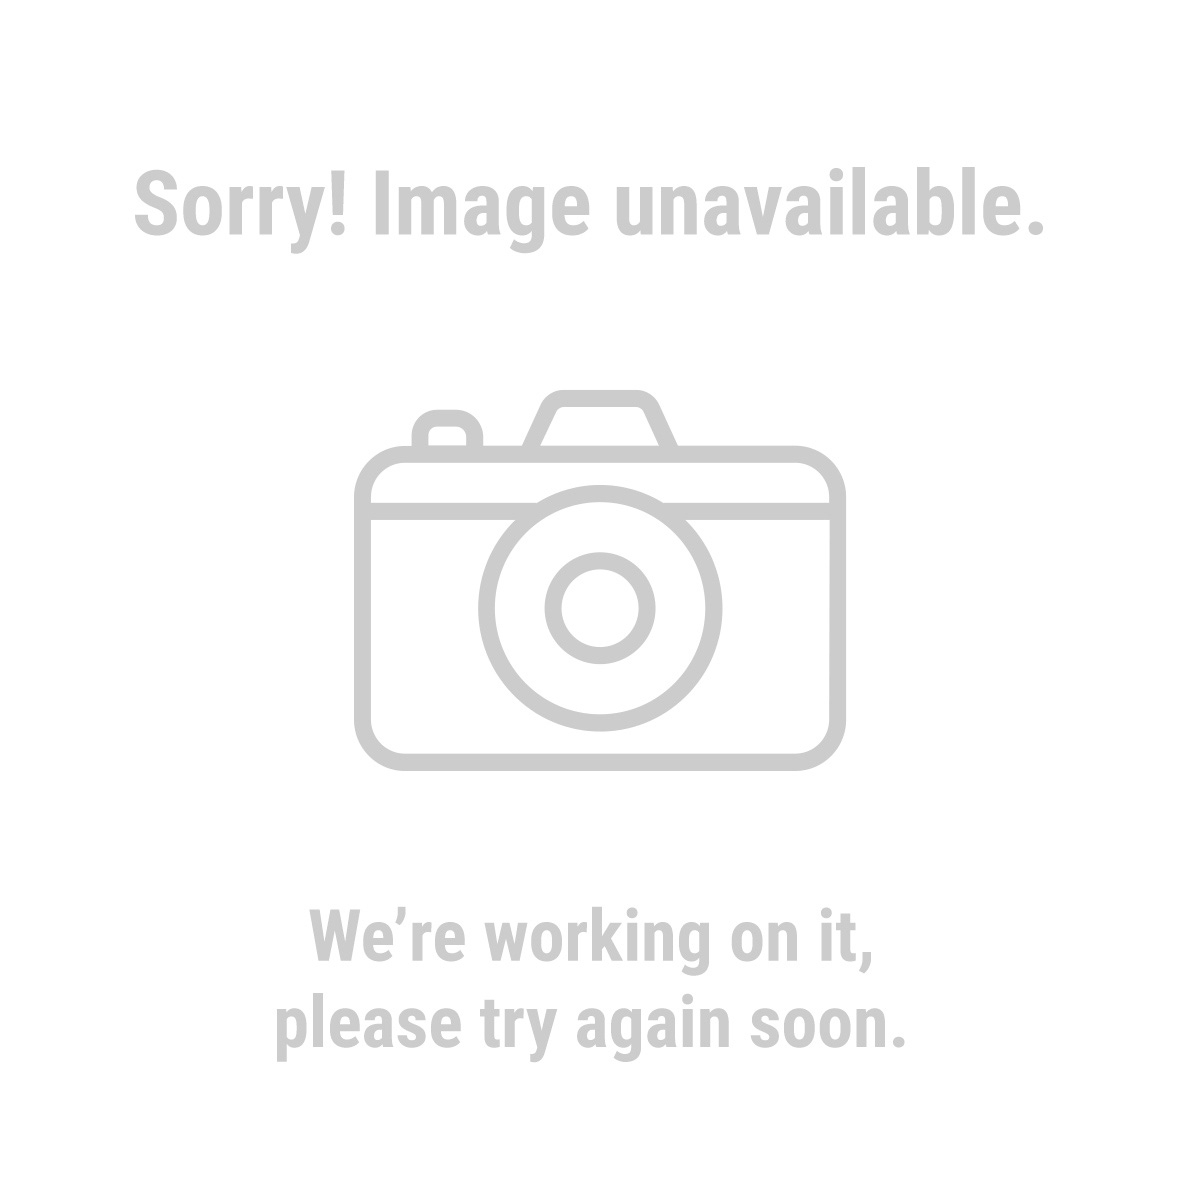 "H-M 66361 4"" x 7/8"" Rubber Swivel Caster"